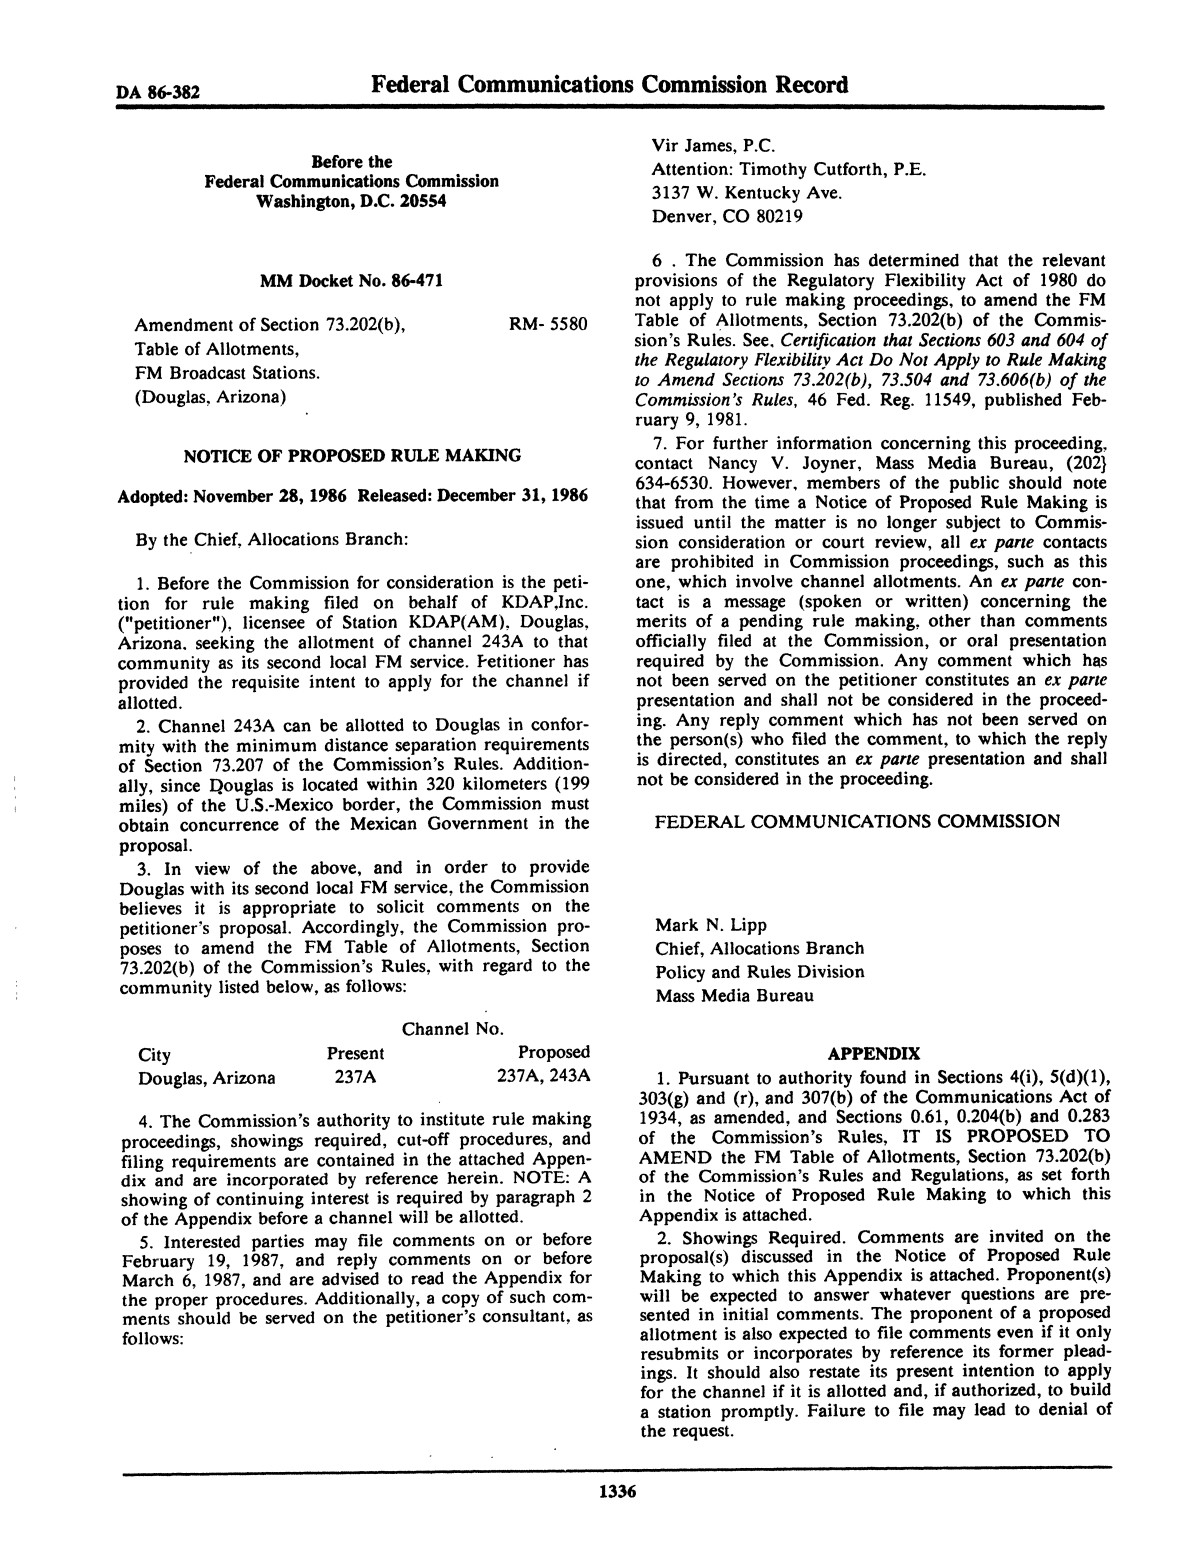 FCC Record, Volume 1, No. 7, Pages 1267 to 1368, December 22, 1986 - January 2, 1987                                                                                                      1336